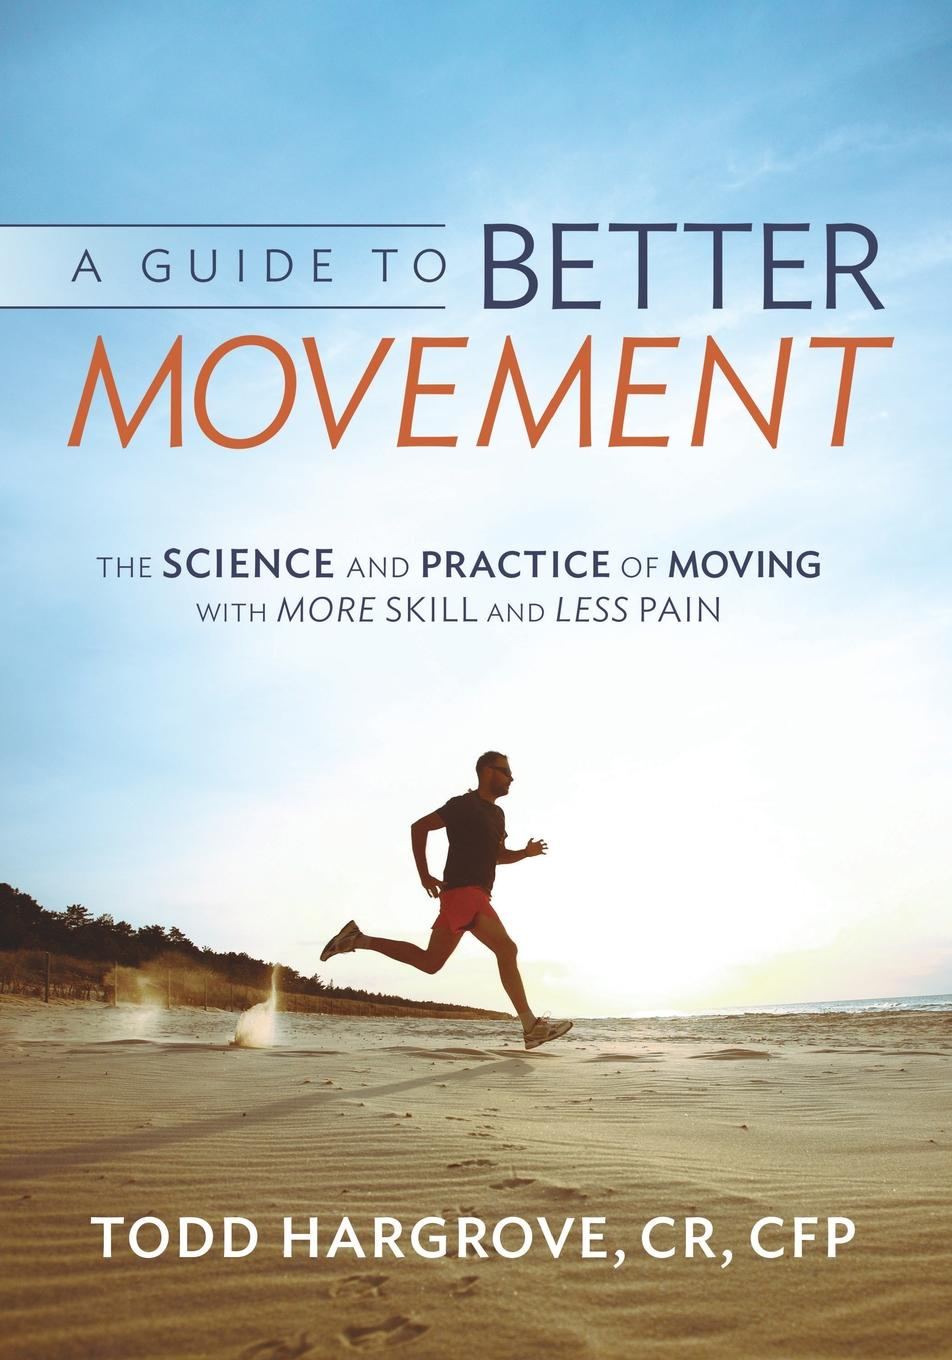 Todd Hargrove A Guide to Better Movement. The Science and Practice of Moving with More Skill and Less Pain sreeraman ponson play and movement approach on biomotor abilities and psychomotor skill